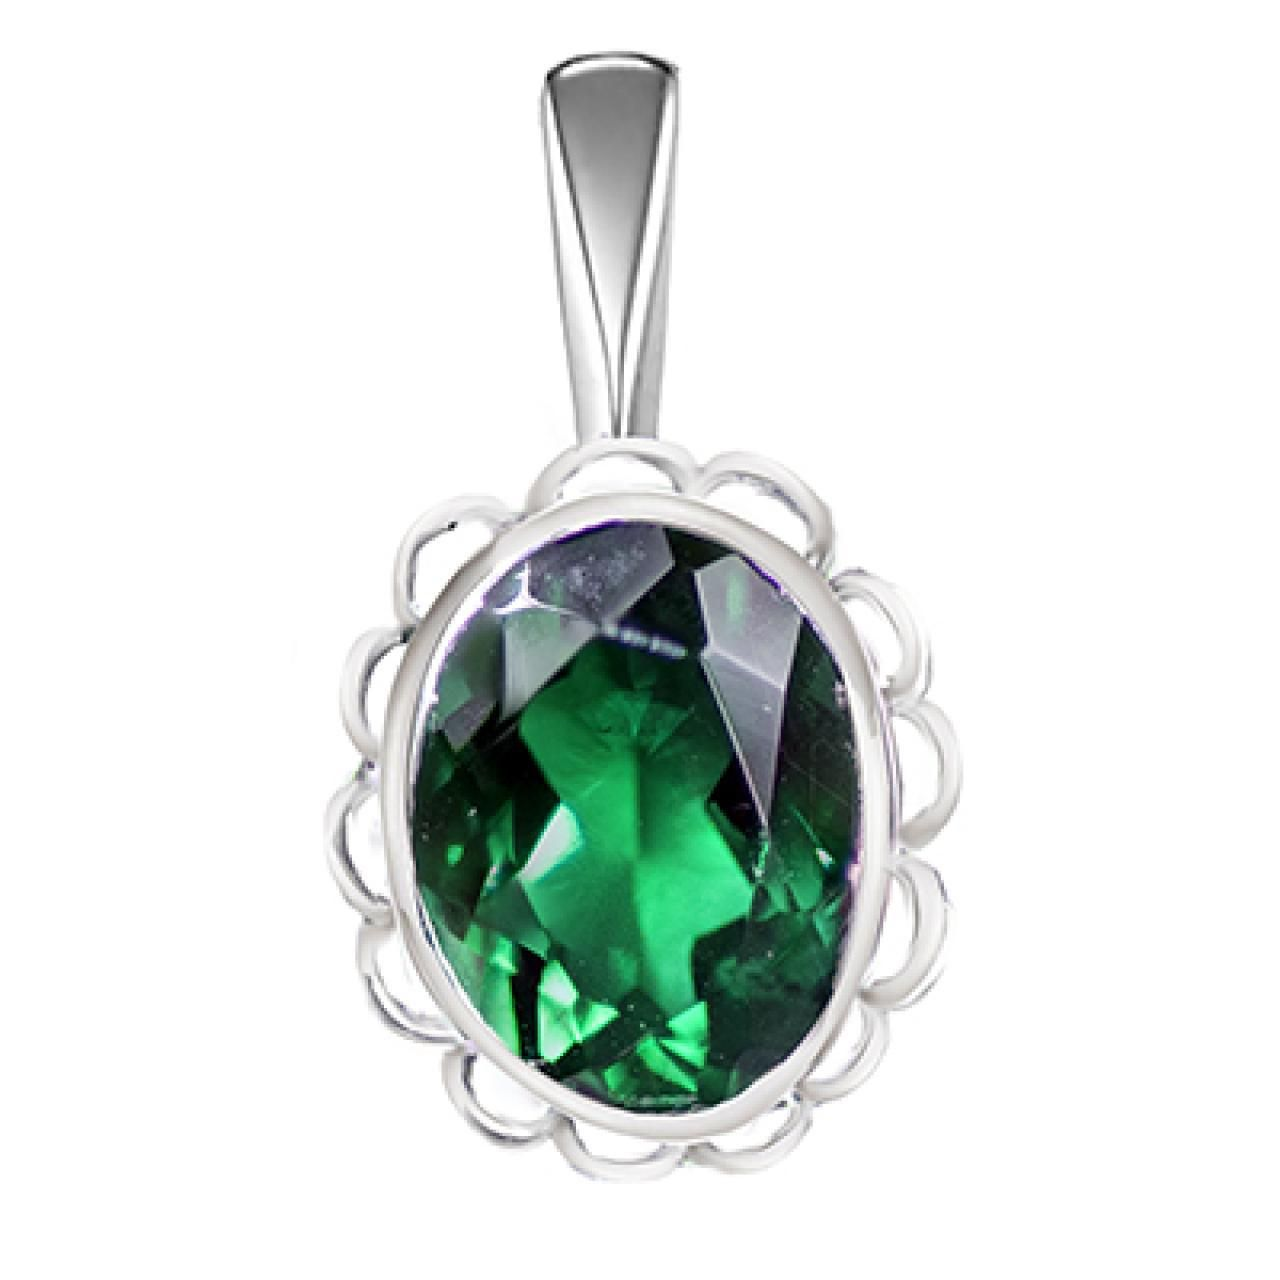 Hoppe Jewelers - SS OVL EMER-MAY BS ACCENT PEND, $29.9 (http://www.hoppejewelers.com/ss-ovl-emer-may-bs-accent-pend/)